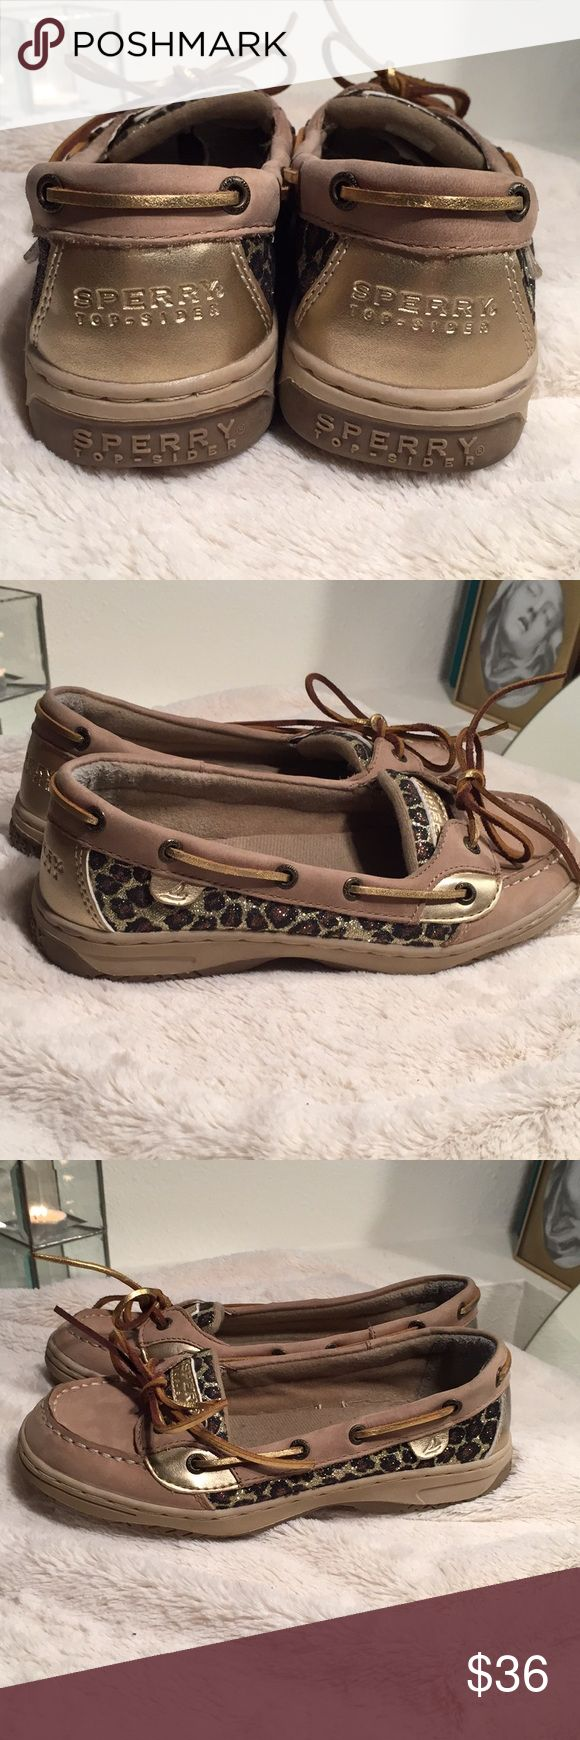 [SHOE SALE!] Sperry Leopard and Gold Top-Siders EUC Top-siders with glitter leopard print and gold leather accents. There is light wear to the inside and a very small scuff on the inner left heel (see photos)  EU 35.5 Shoes Flats & Loafers